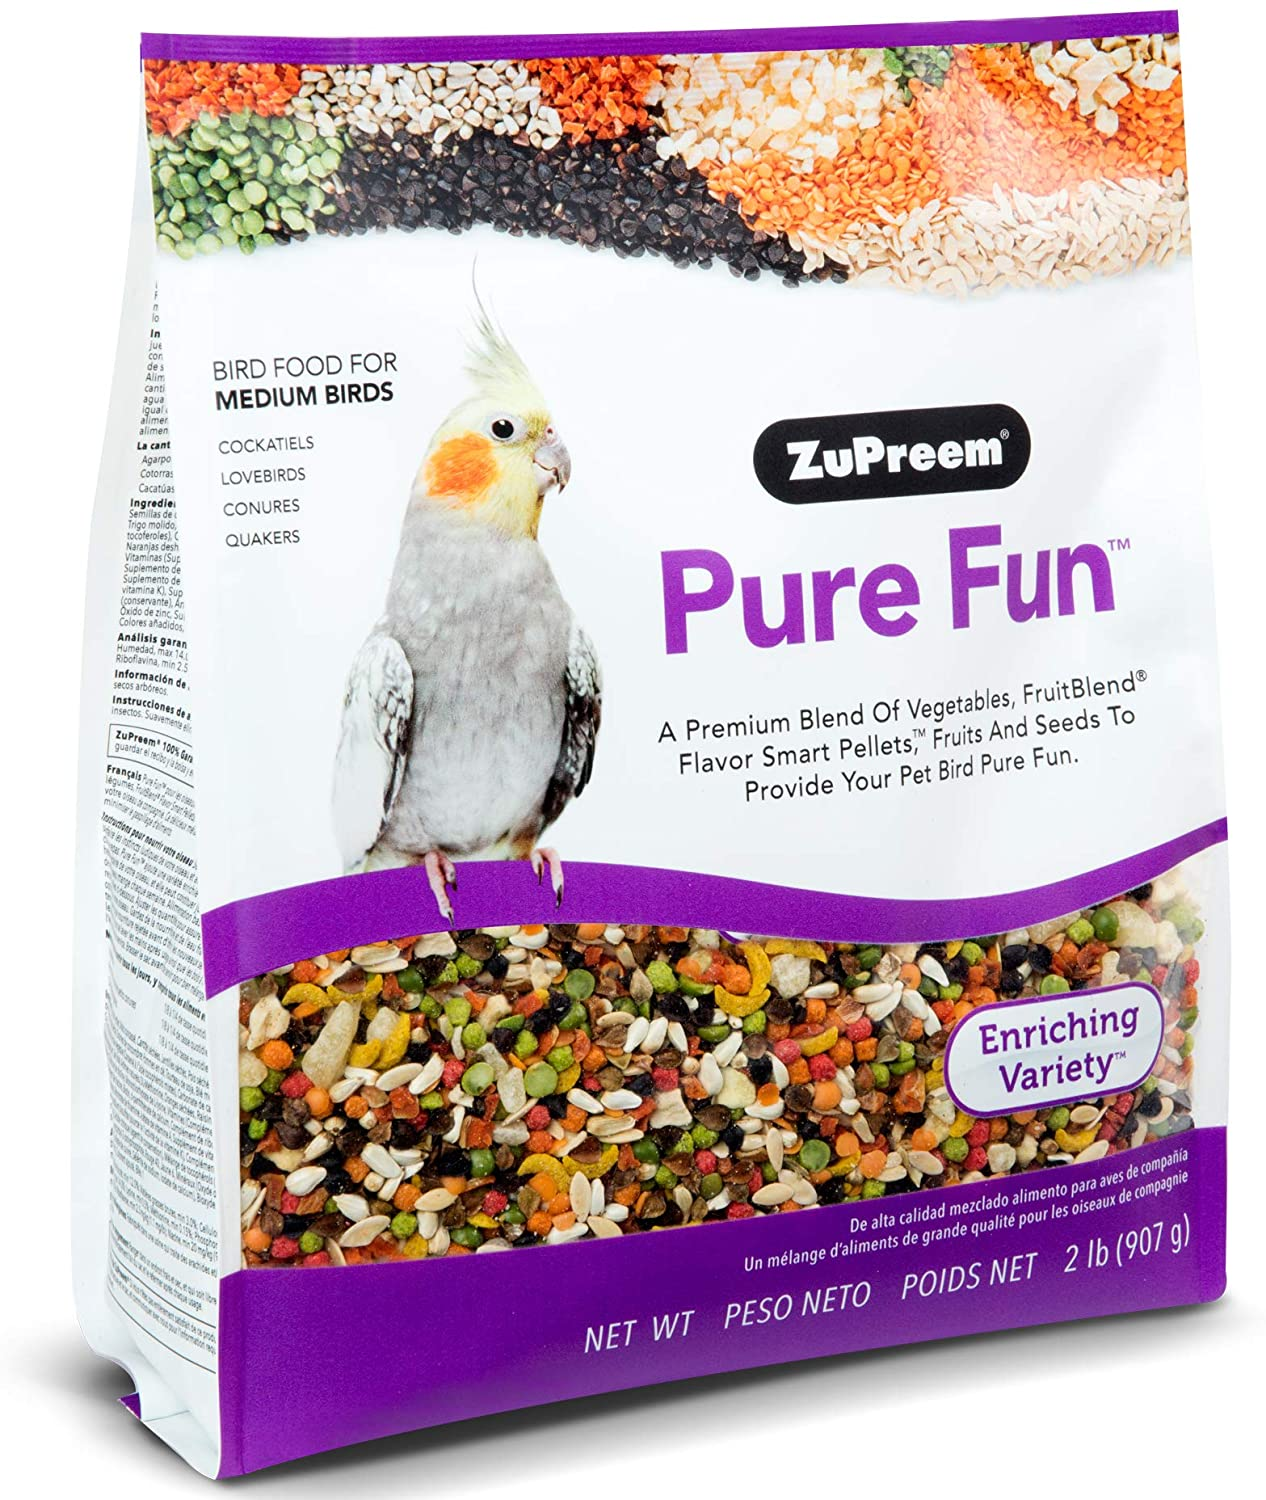 ZuPreem Pure Fun Bird Food for Medium Birds - Powerful Blend of Vegetables, Natural FruitBlend Pellets, Fruit, Seeds for Lovebirds, Quakers, Small Conures, Cockatiels